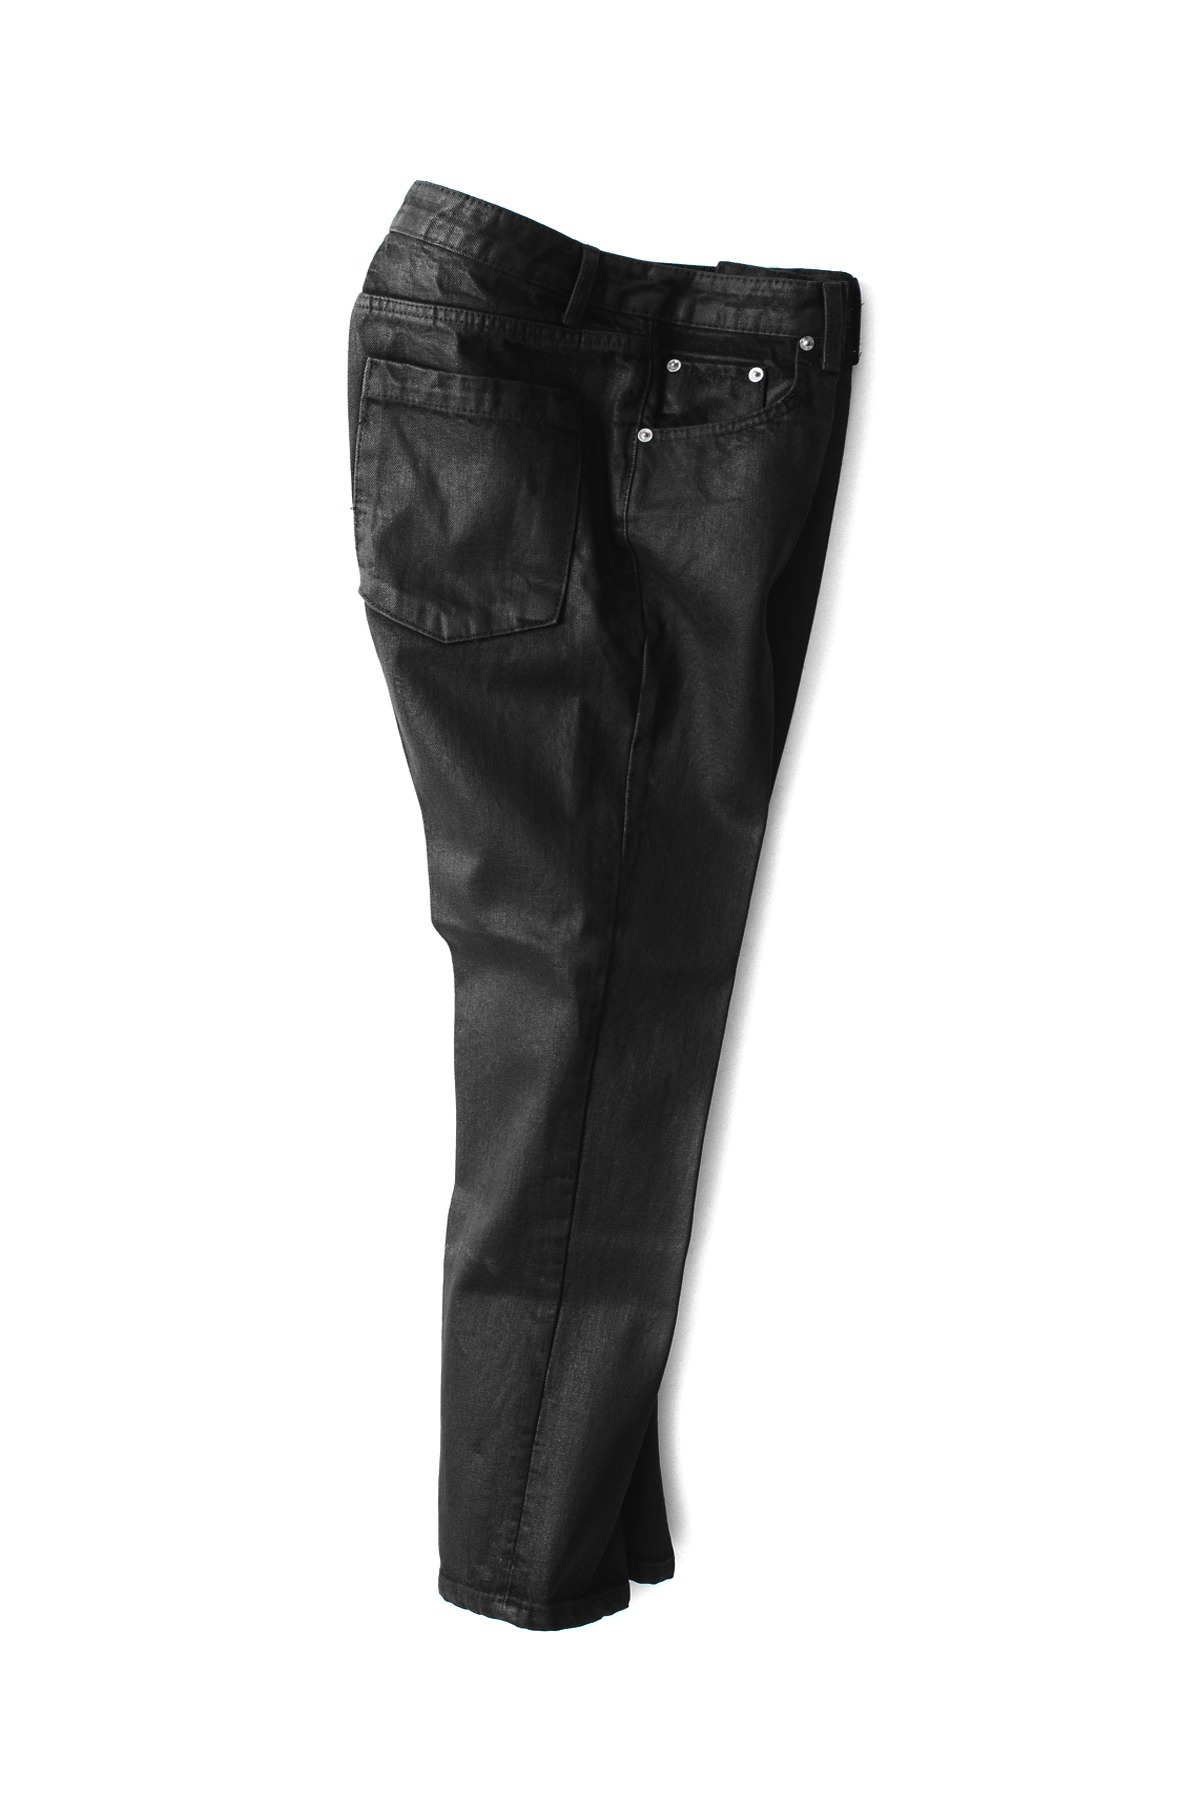 BIRTHDAYSUIT : Slim Fit Coated Jeans (Black)